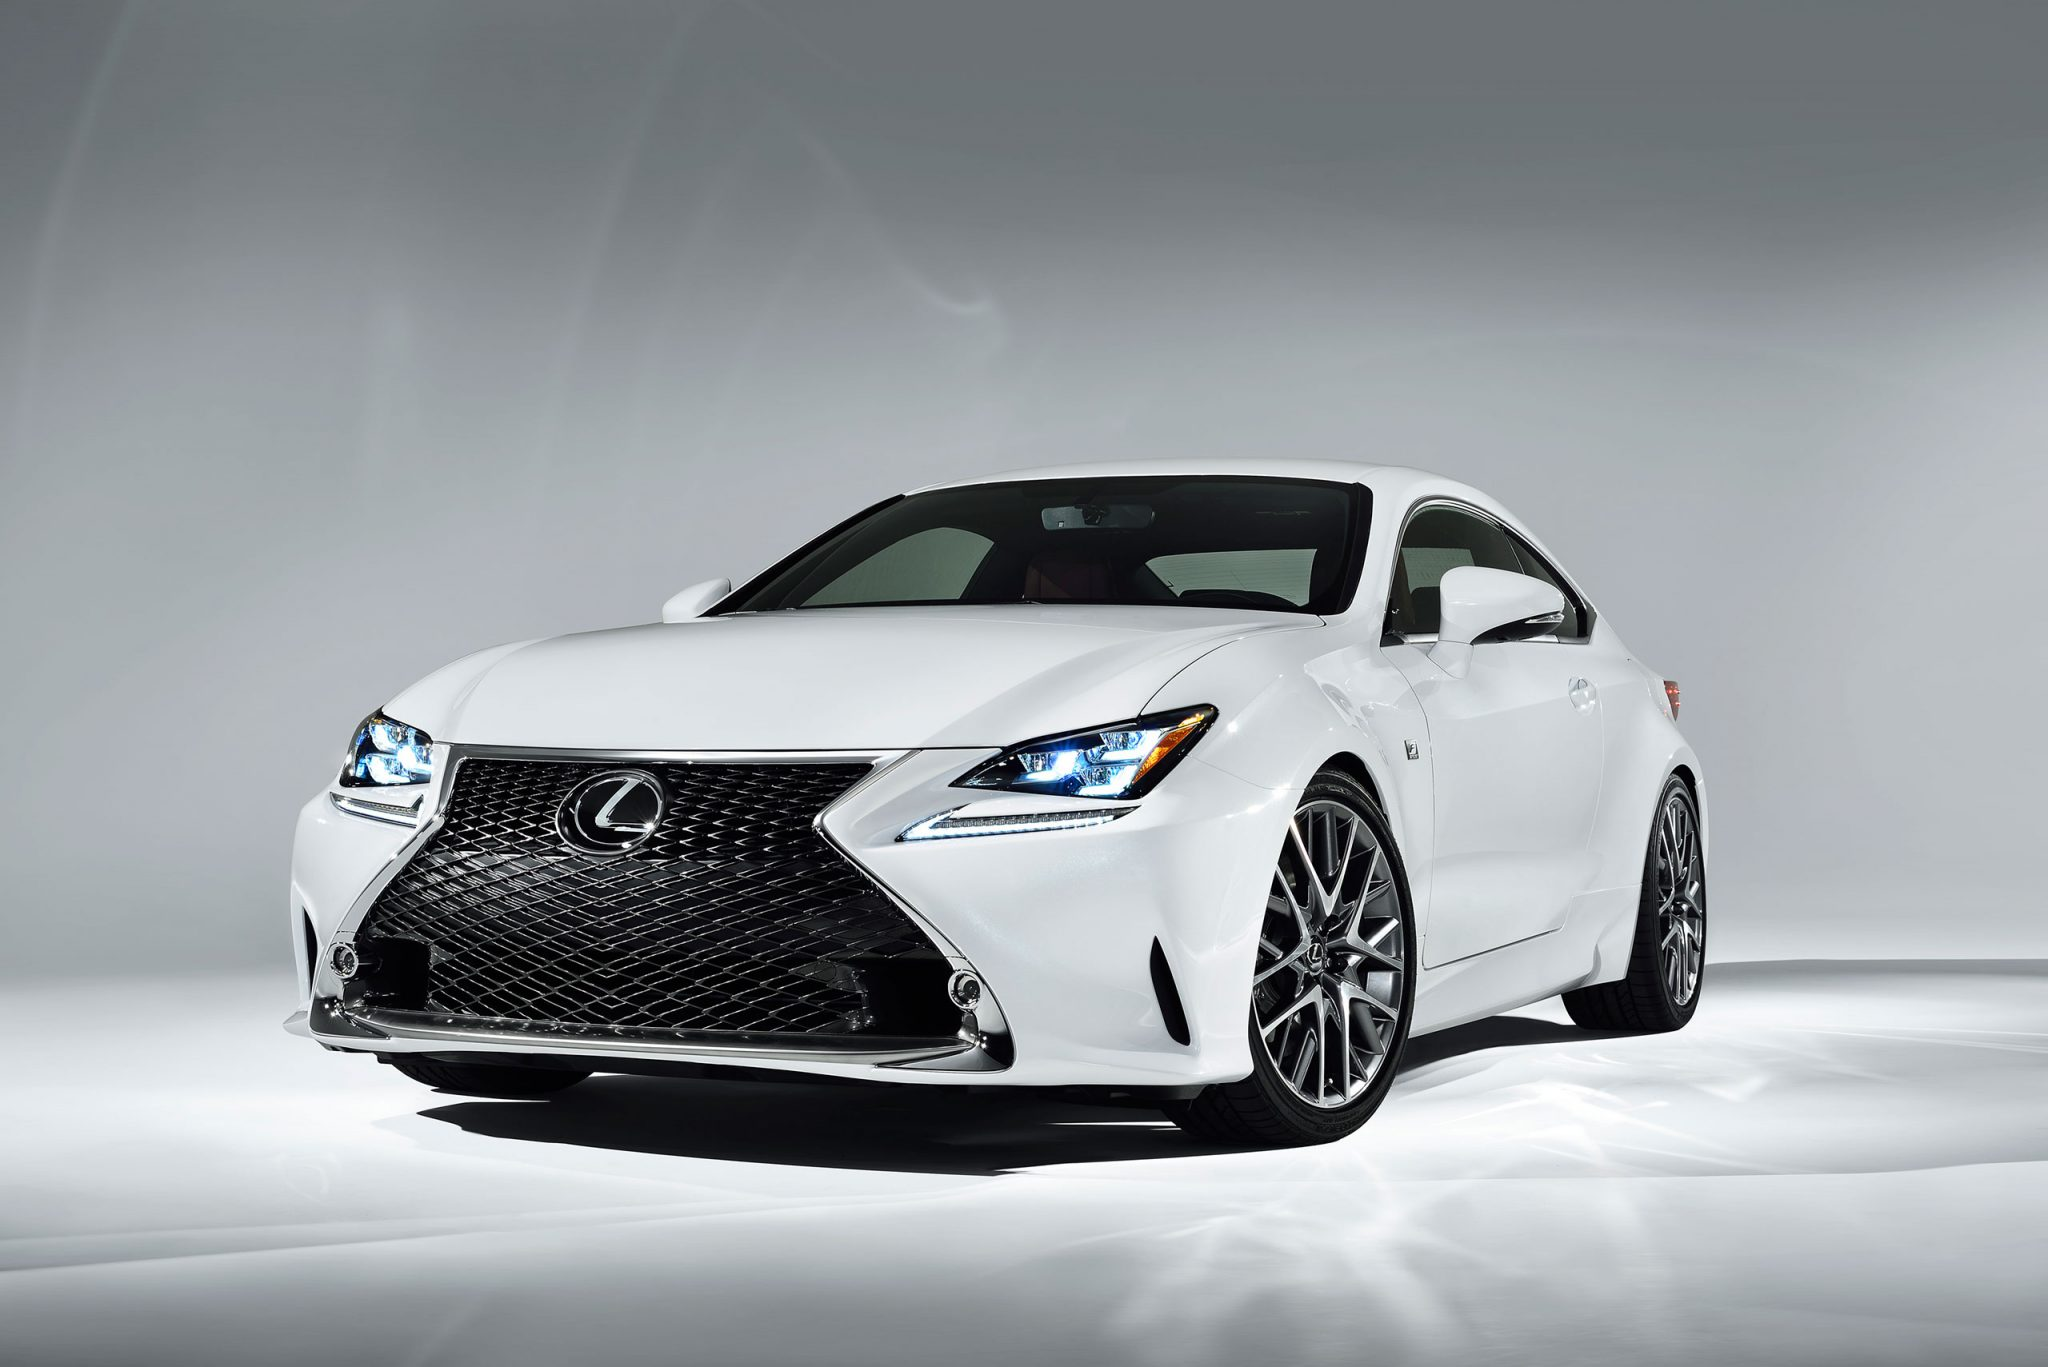 Lexus Cars - News: RC 350 F Sport officially revealed